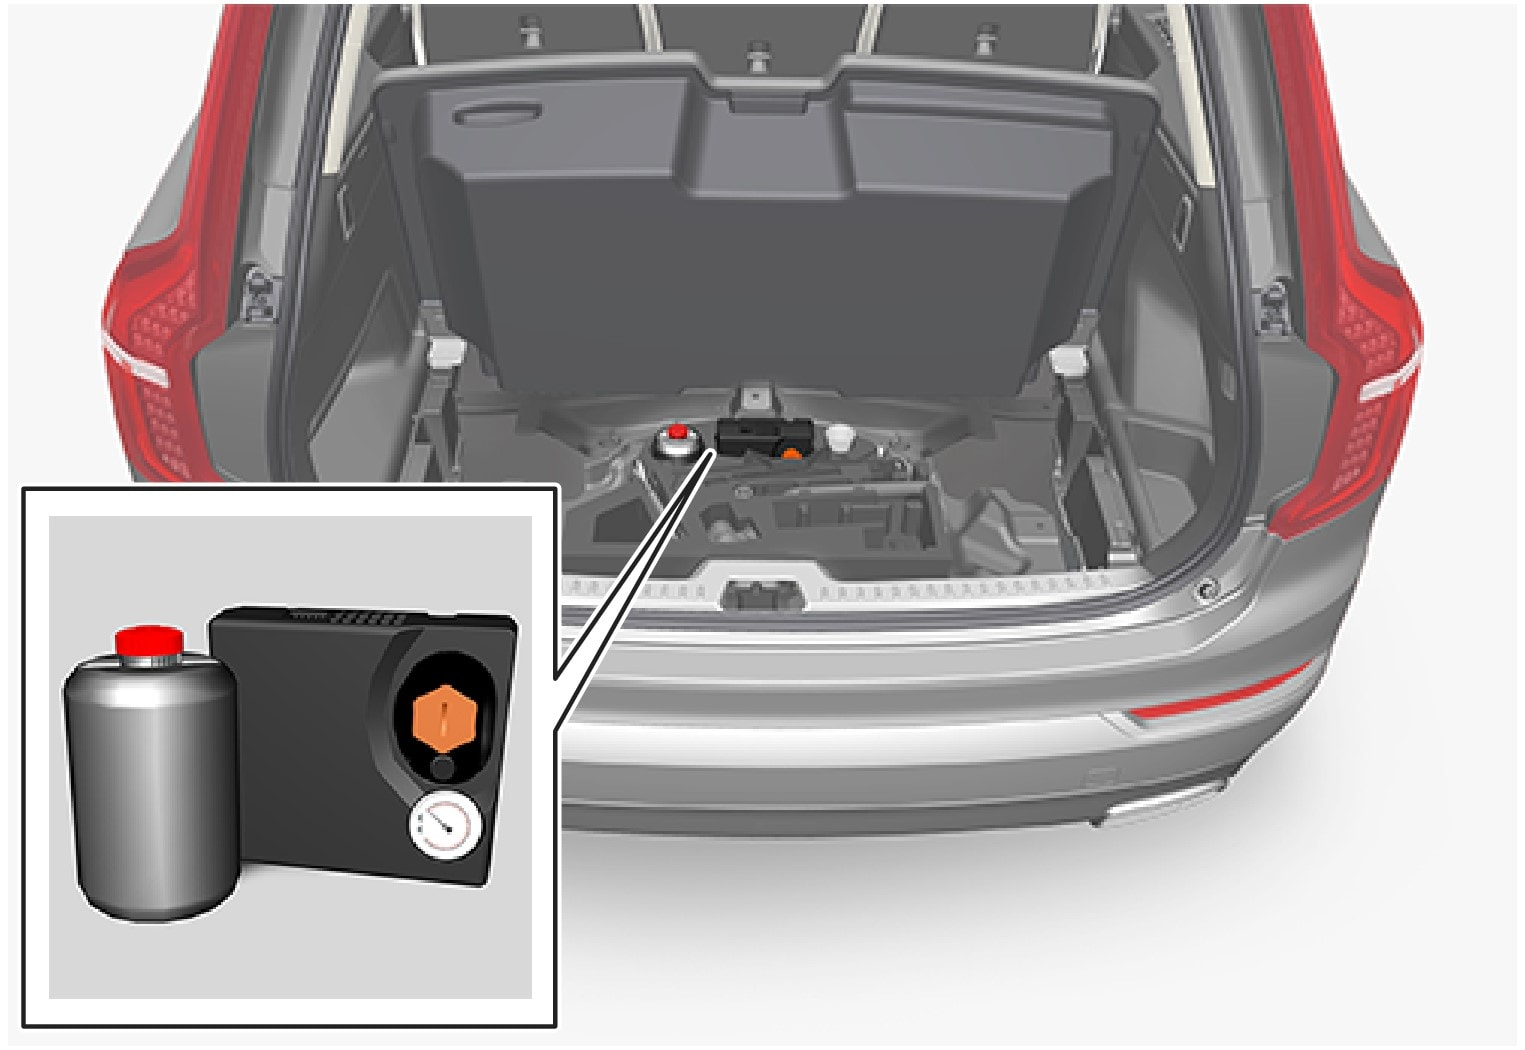 P5-1507-temporary mobility kit in luggage comp